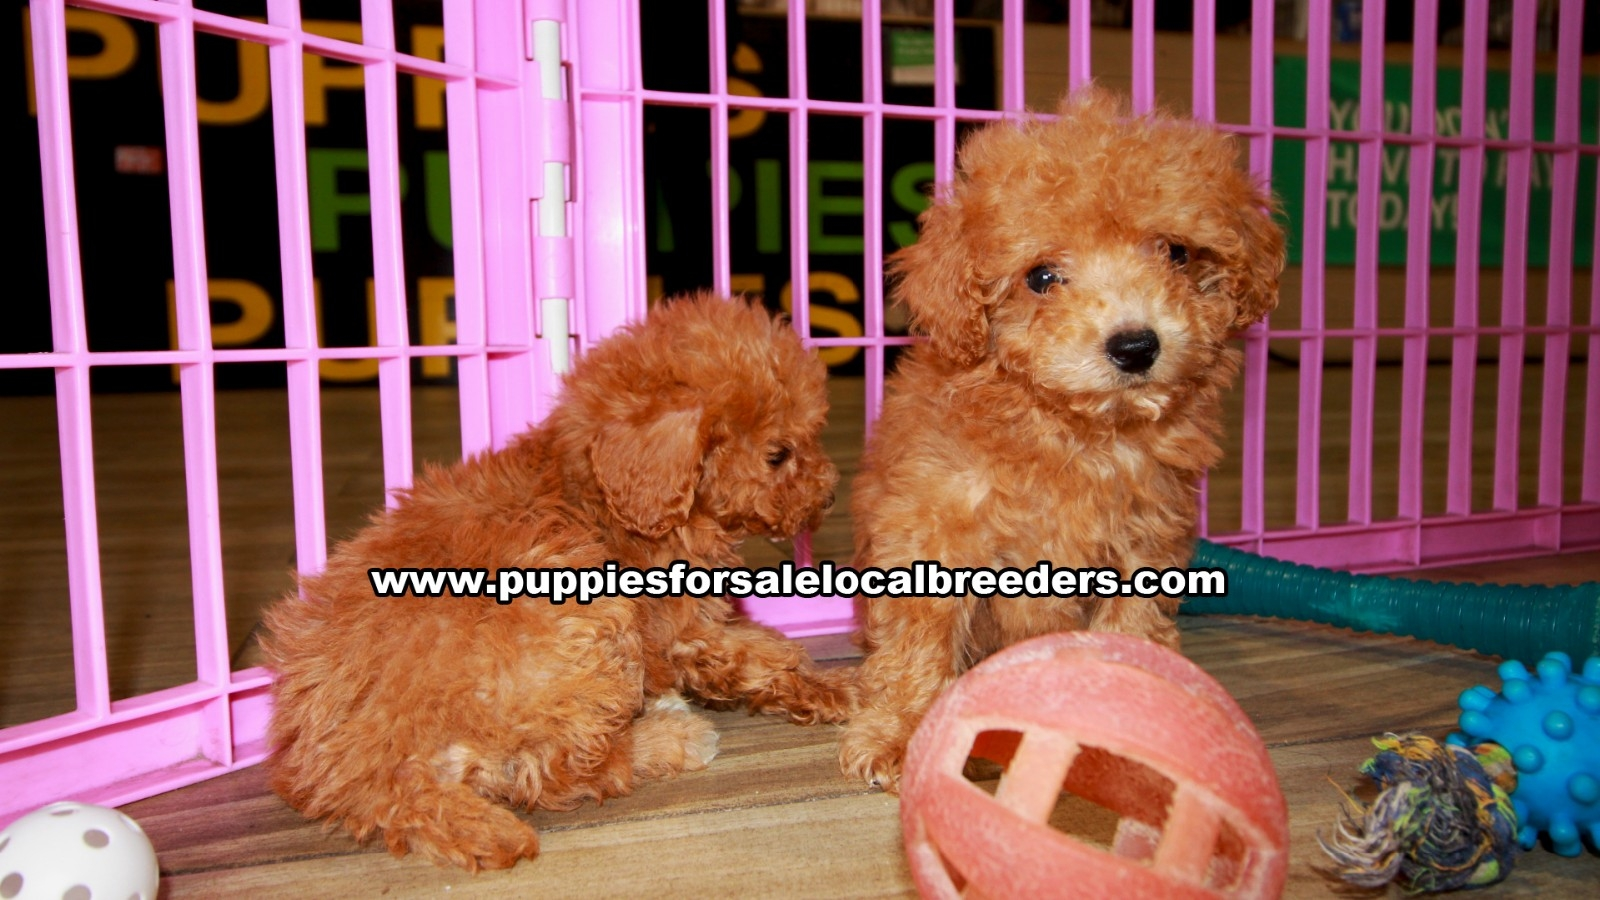 Red Toy Poodle, Puppies For Sale In Georgia, Local Breeders, Near Atlanta, Ga